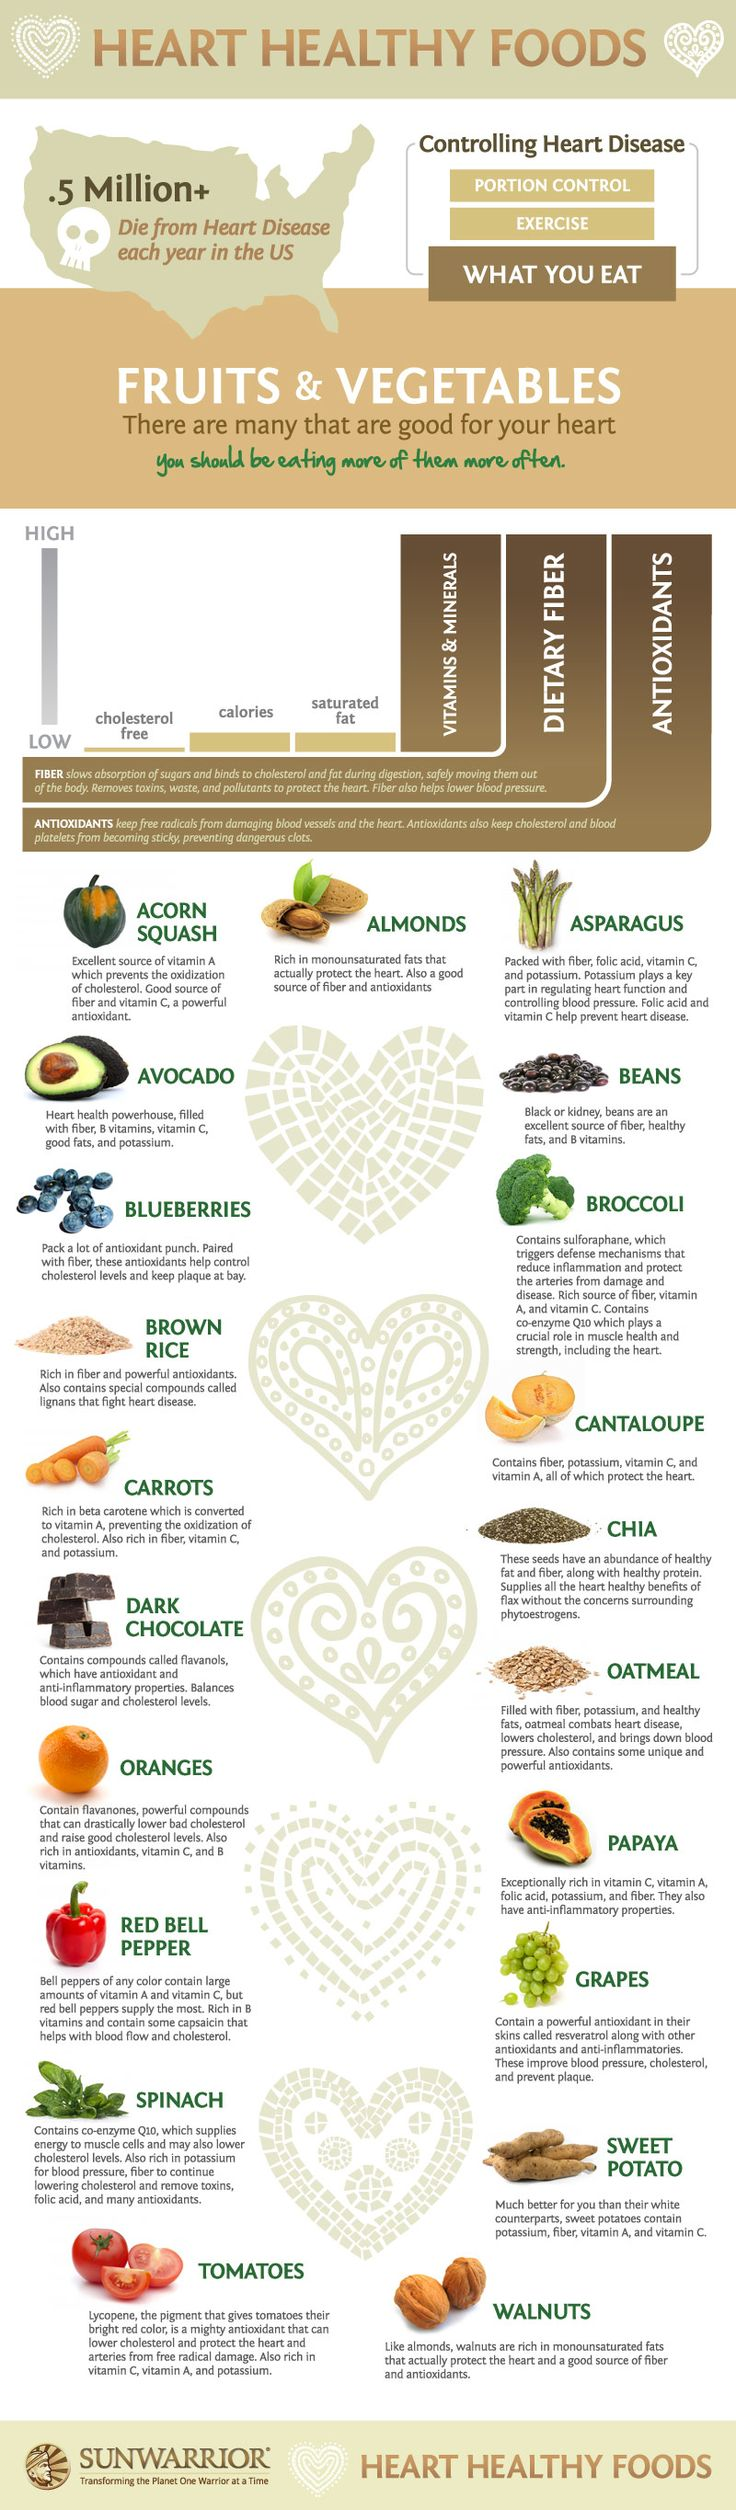 heart healthy foods #plantbased #diet #health